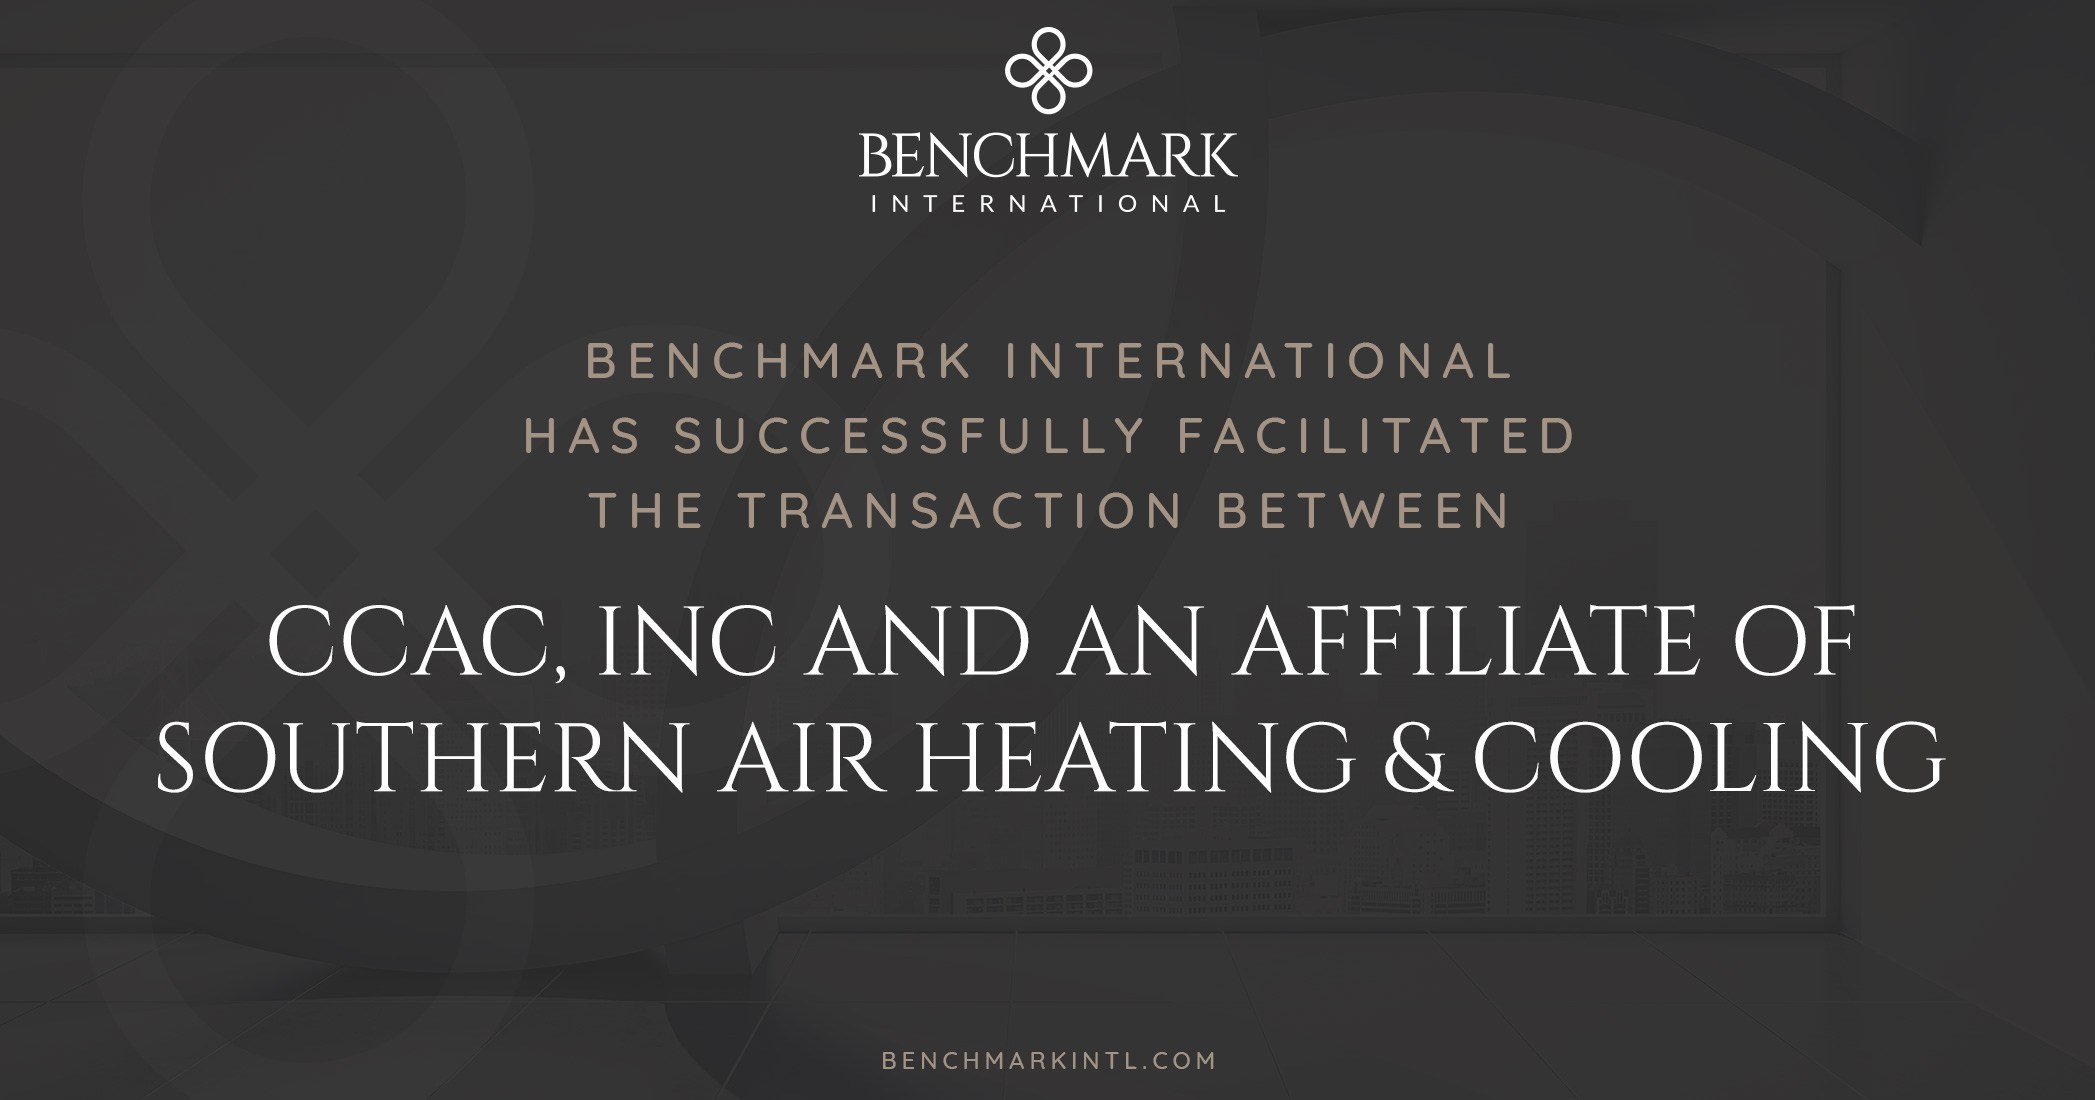 Benchmark International Successfully Facilitated the Transaction Between CCAC, Inc and an Affiliate of Southern Air Heating & Cooling